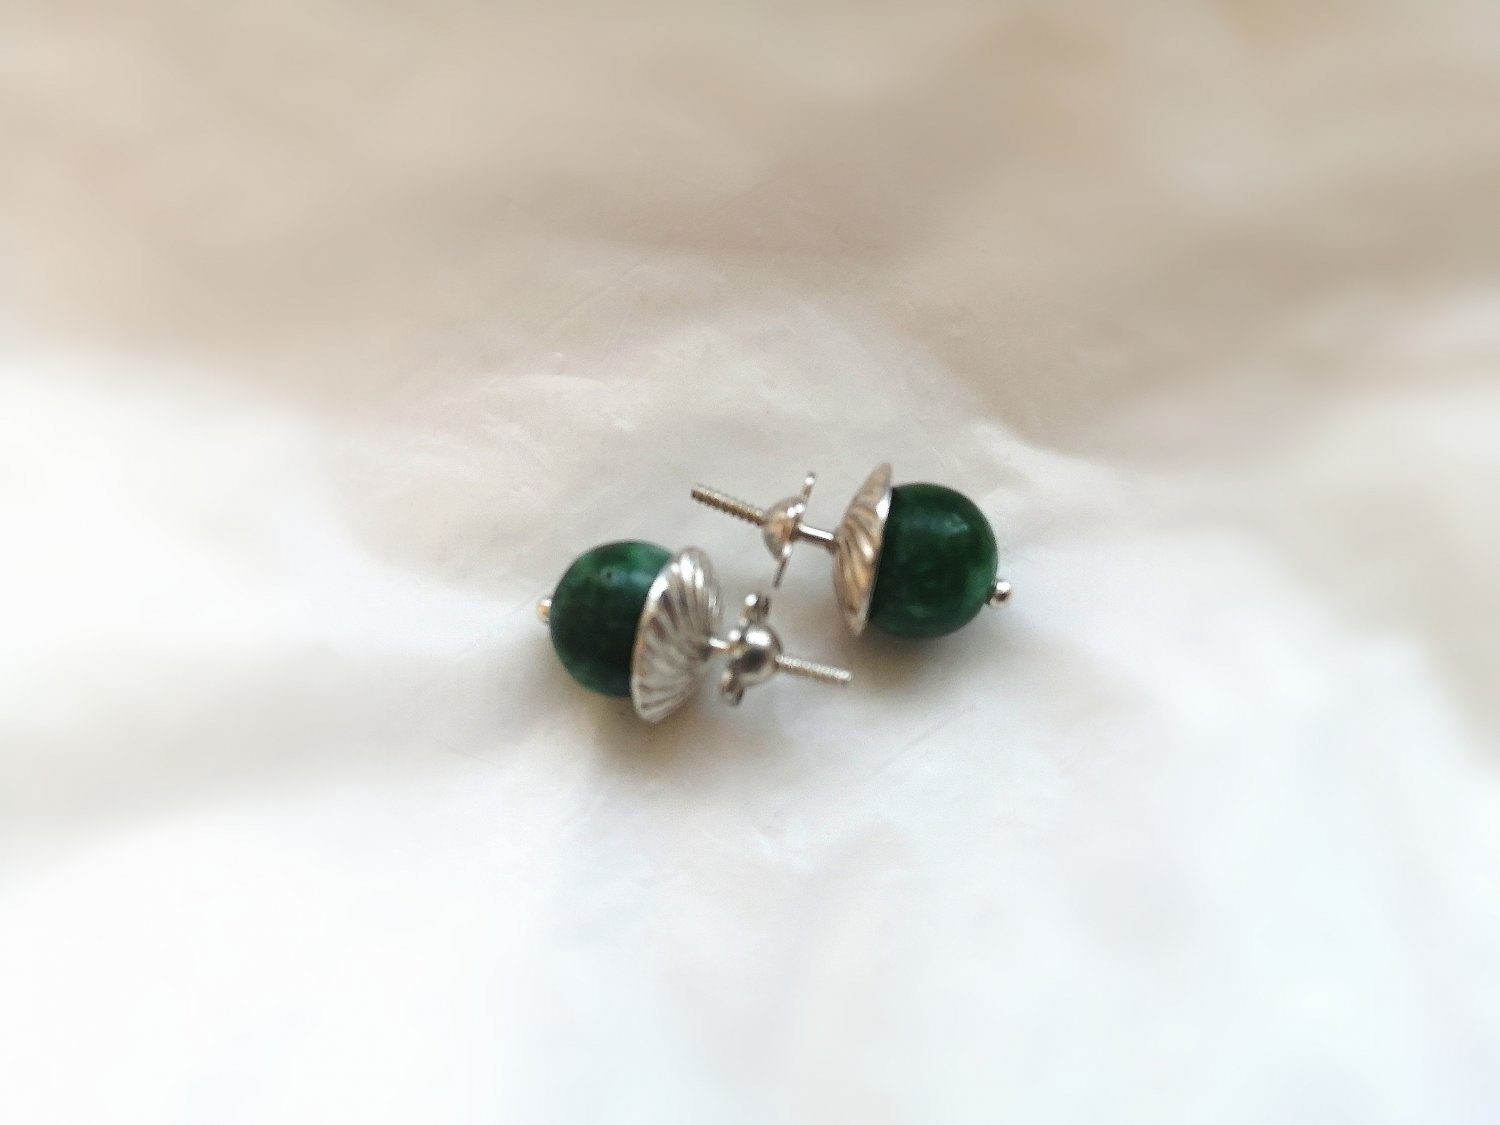 STUD EARRINGS in SILVER 800 and with Jade stone Originals